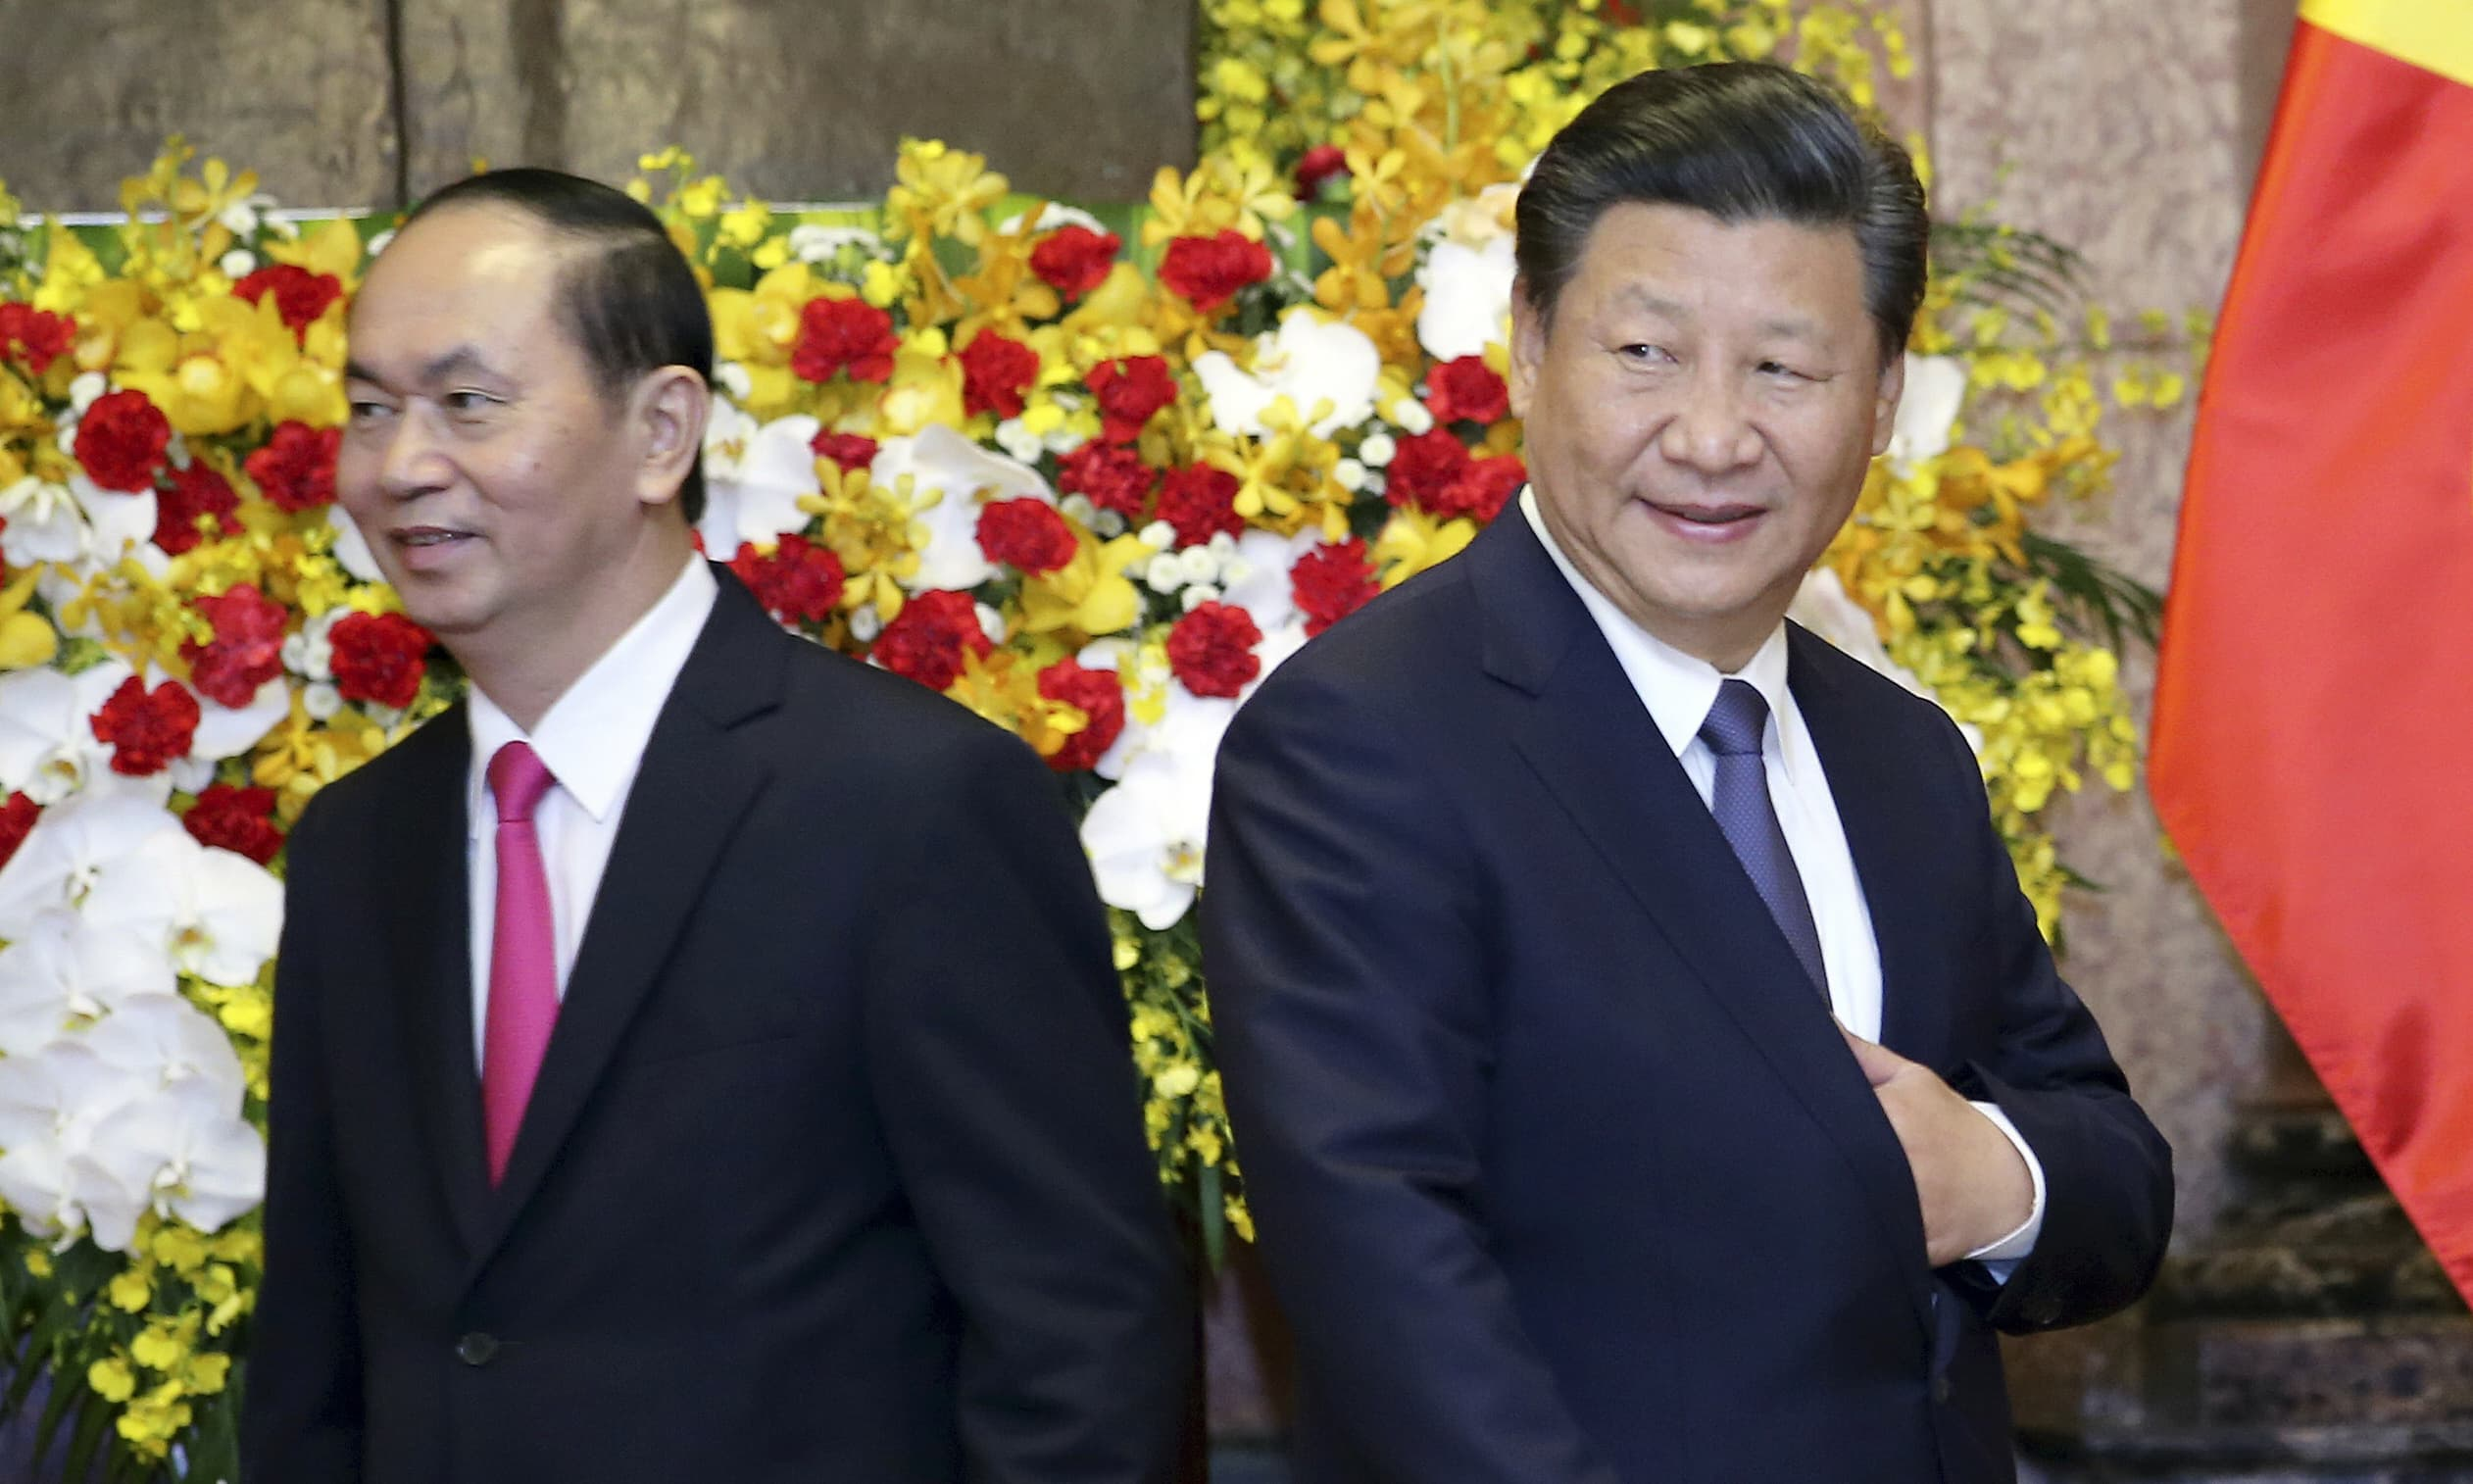 Chinese President Xi Jinping, right, and Vietnamese President Tran Dai Quang walk to their seats for a meeting at Presidential Palace in Hanoi, Vietnam Monday, Nov. 13, 2017. —AP